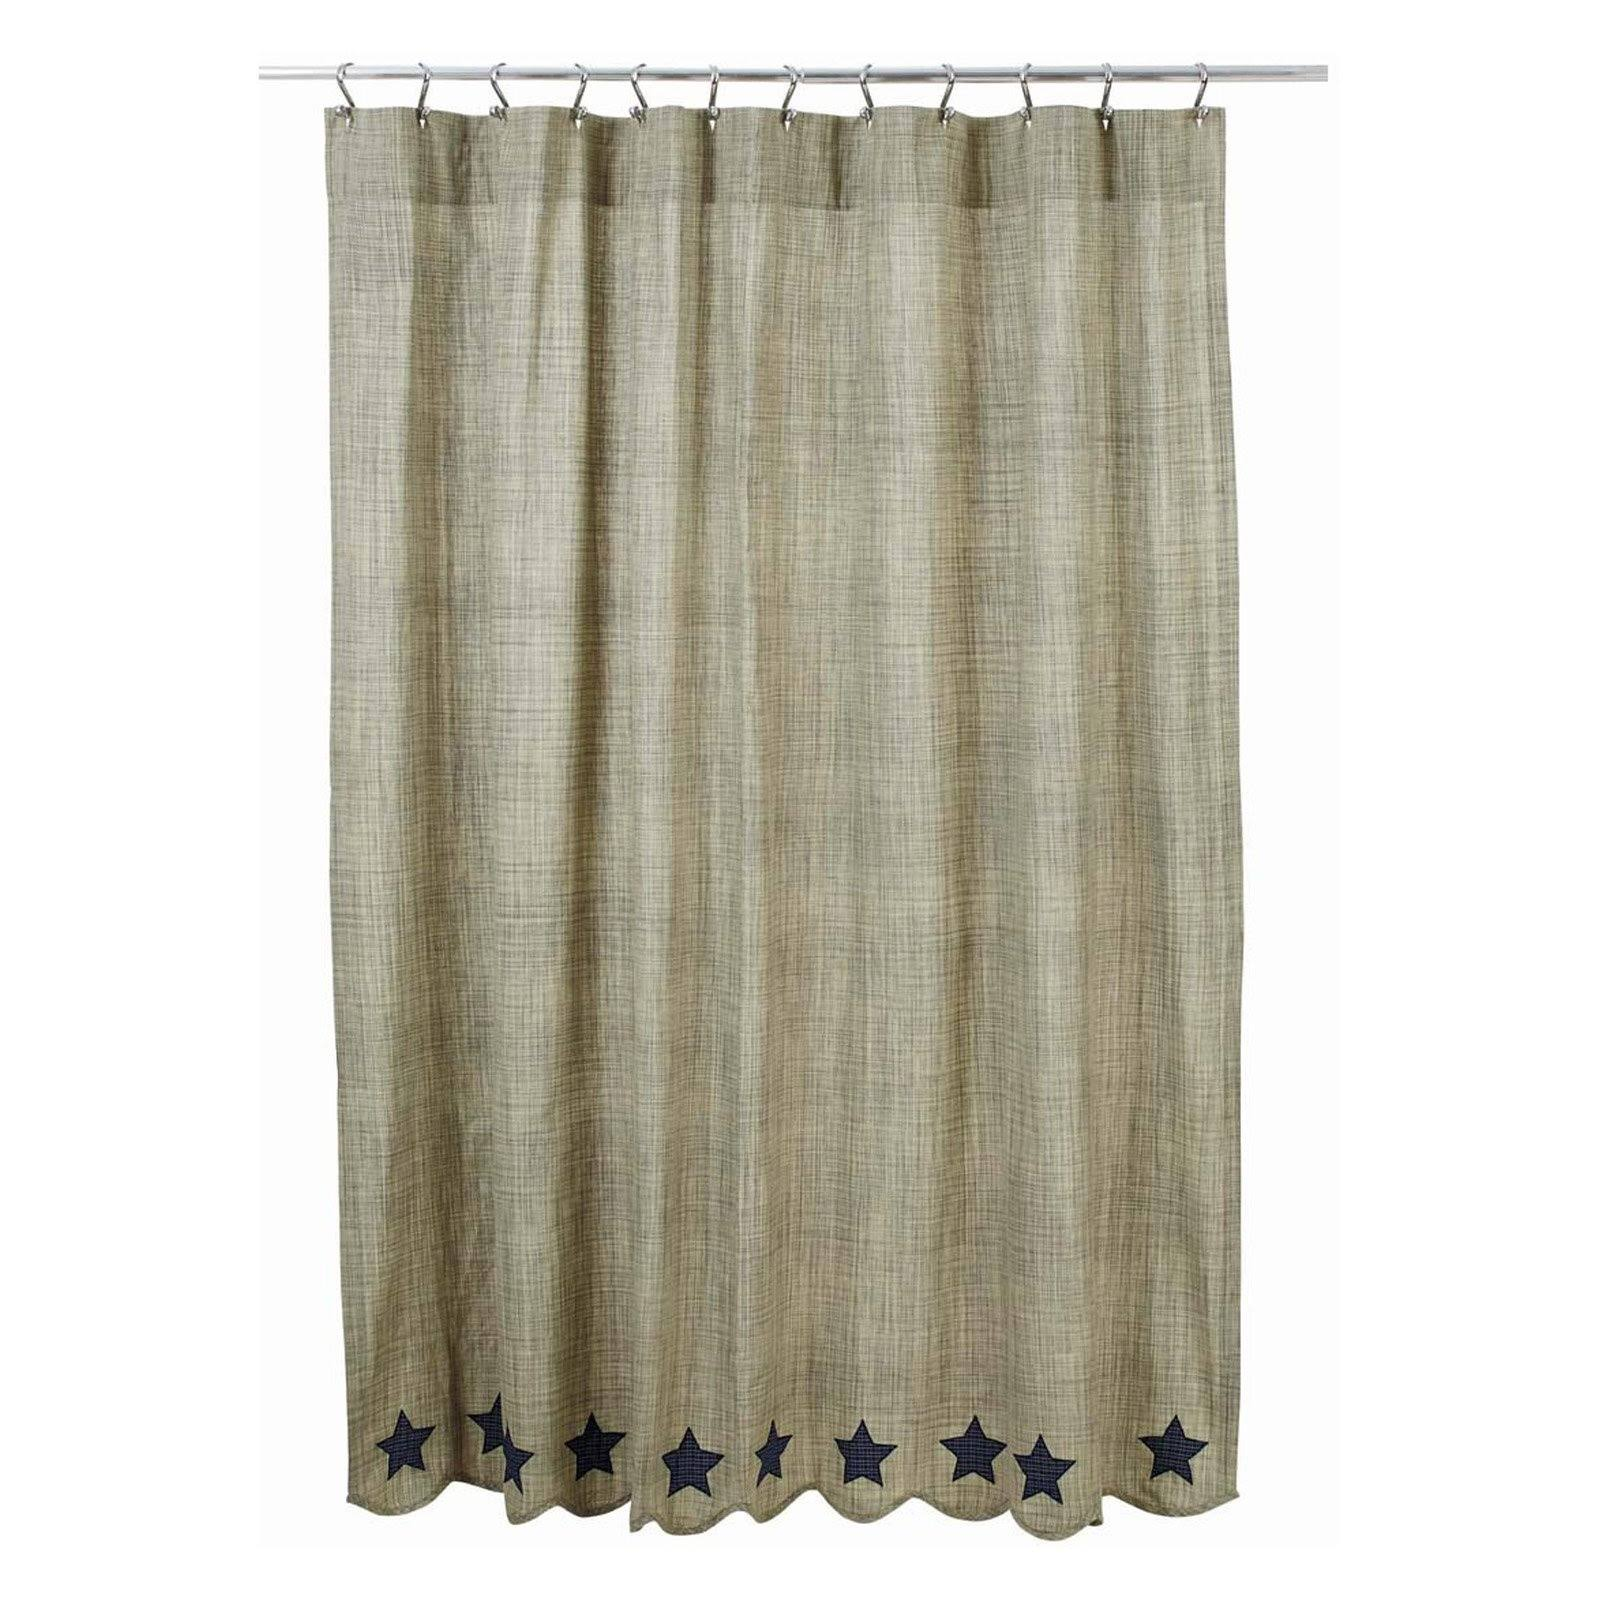 VHC Brands Vincent Scalloped Shower Curtain